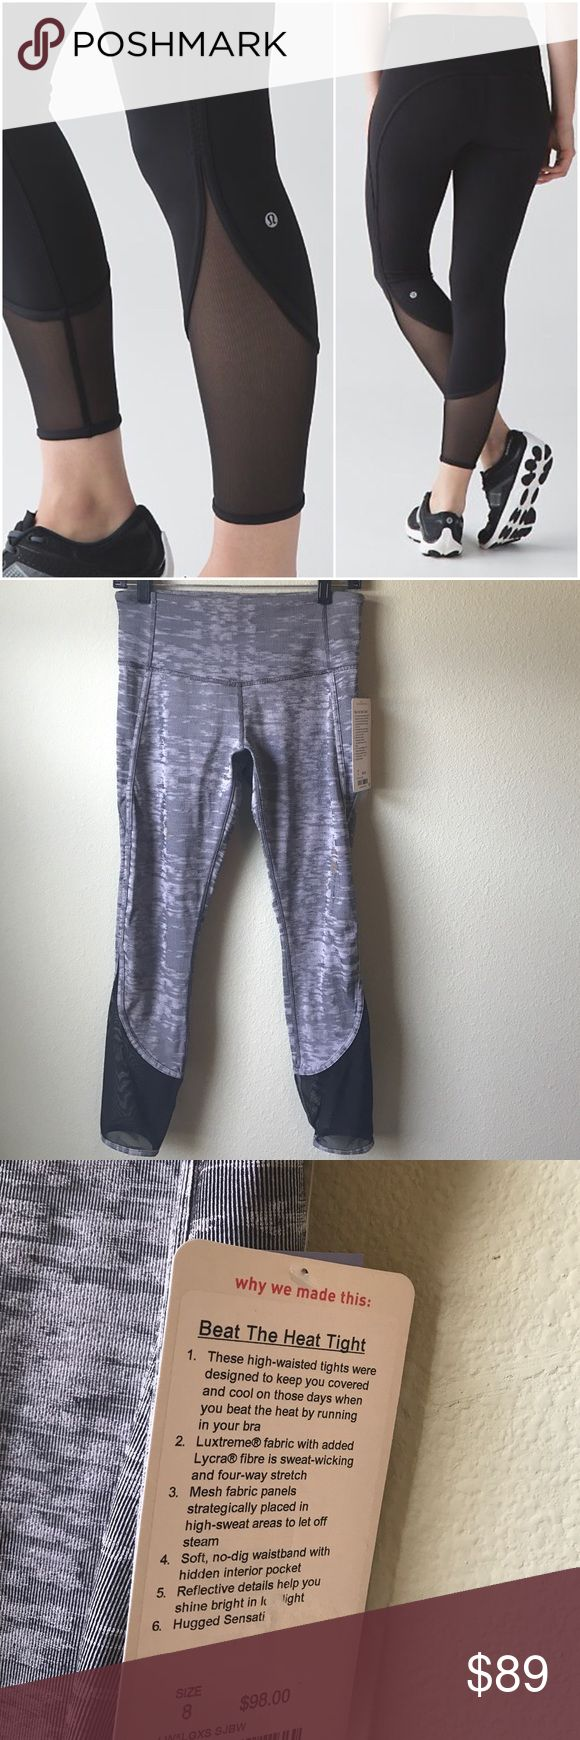 NWT LULULEMON BEAT THE HEAT TIGHT GRAY -- Size 8 Brand: Lululemon Athletica Beat The Heat Tight | Grayish Black SjBw | black is stock photo only  Condition: New with tag || Size 8   🚩NO TRADES  🚩NO LOWBALL OFFERS  🚩NO RUDE COMMENTS  🚩NO MODELING  ☀️Please don't discuss prices in the comment box. Make a reasonable offer and I'll either counter, accept or decline.   I will try to respond to all inquiries in a timely manner. Please check out the rest of my closet, I have various brands…